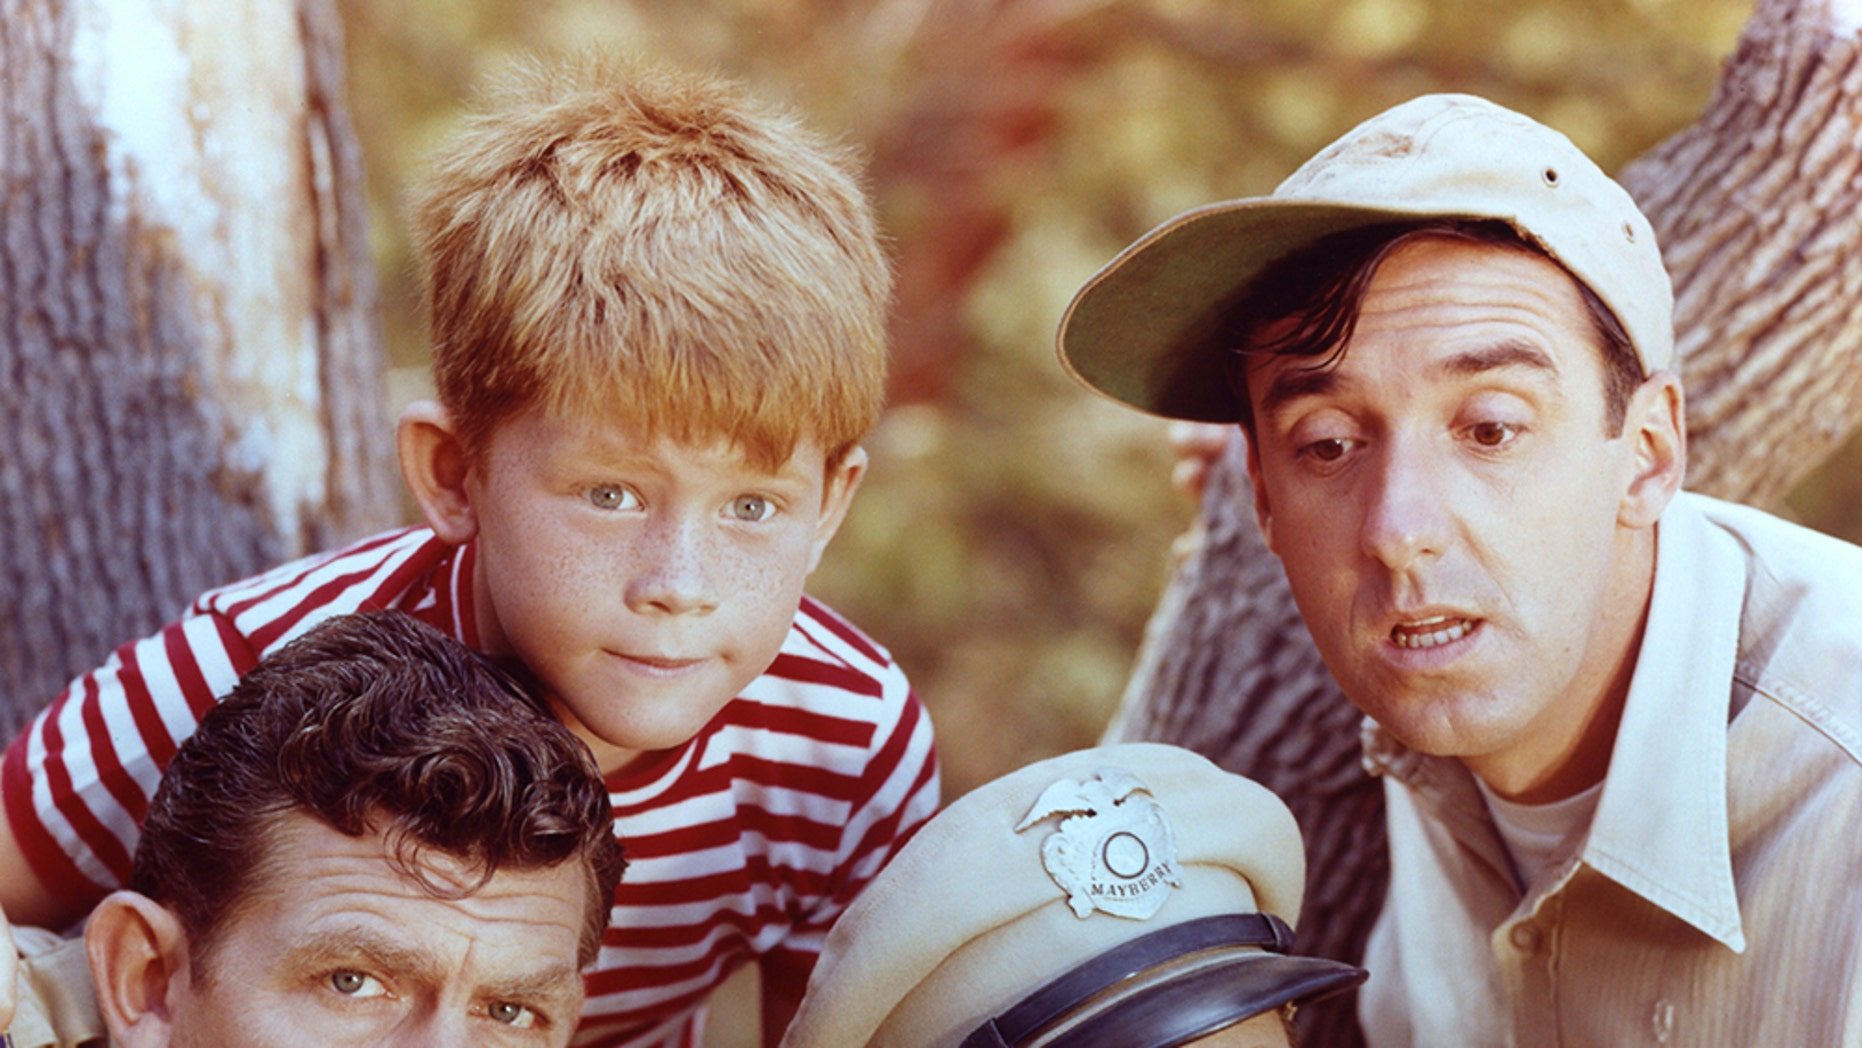 """Andy Griffith as Sheriff Andy Taylor, Jim Nabors as Gomer Pyle, Ron Howard as Opie Taylor and Don Knotts as Deputy Barney Fife in """"The Andy Griffith Show,"""" circa 1963."""